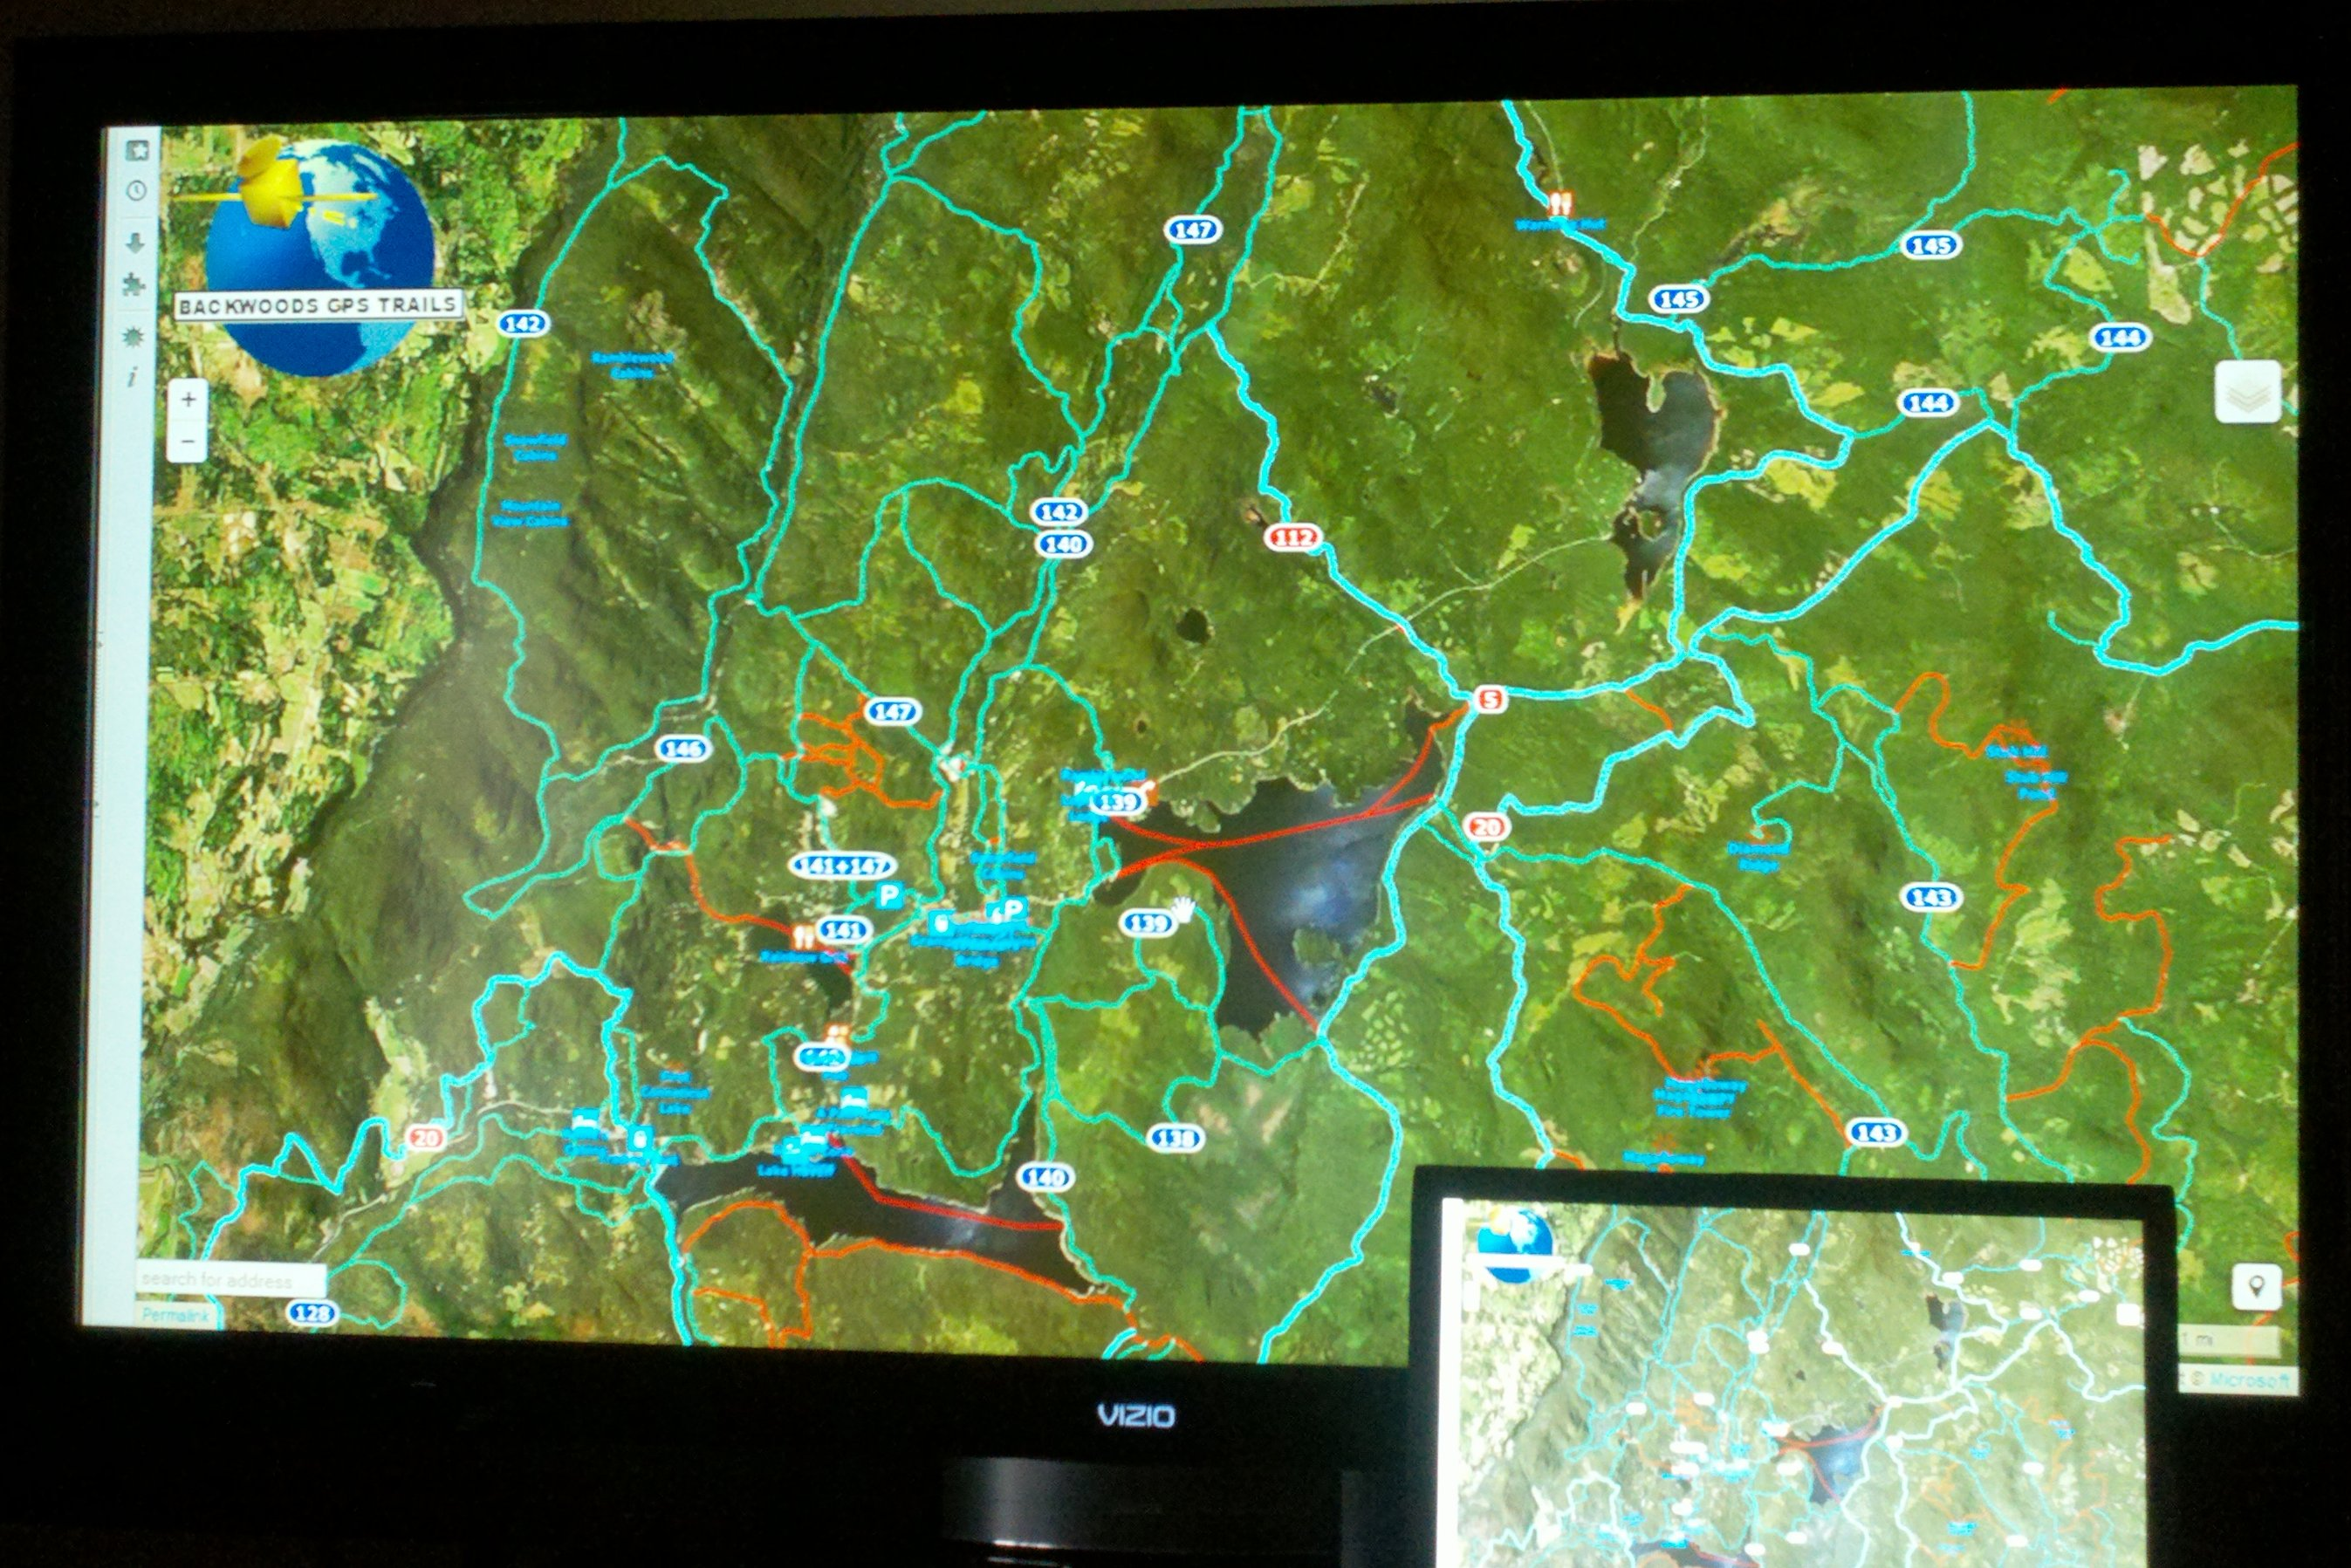 Free Sled Map For Tablets And Smartphones Umbagog Designs LLC - Visio continental us map